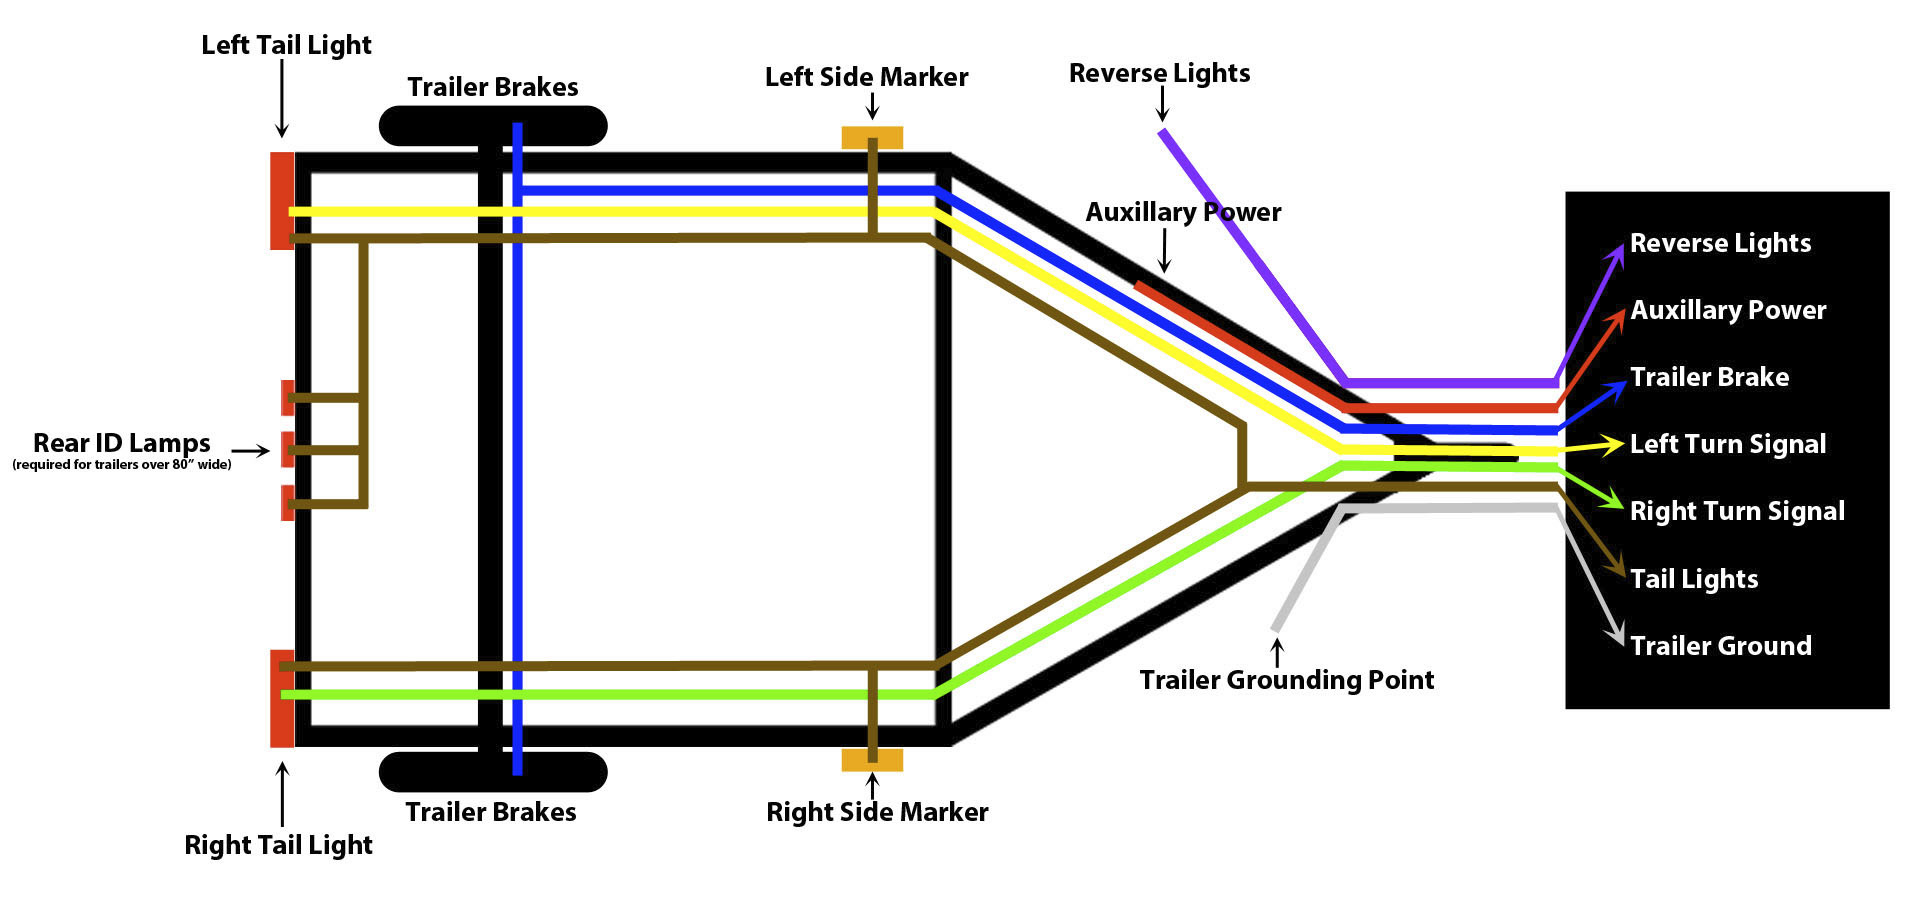 How To Wire Trailer Lights - Trailer Wiring Guide & Videos - 4-Pin Trailer Hitch Wiring Diagram